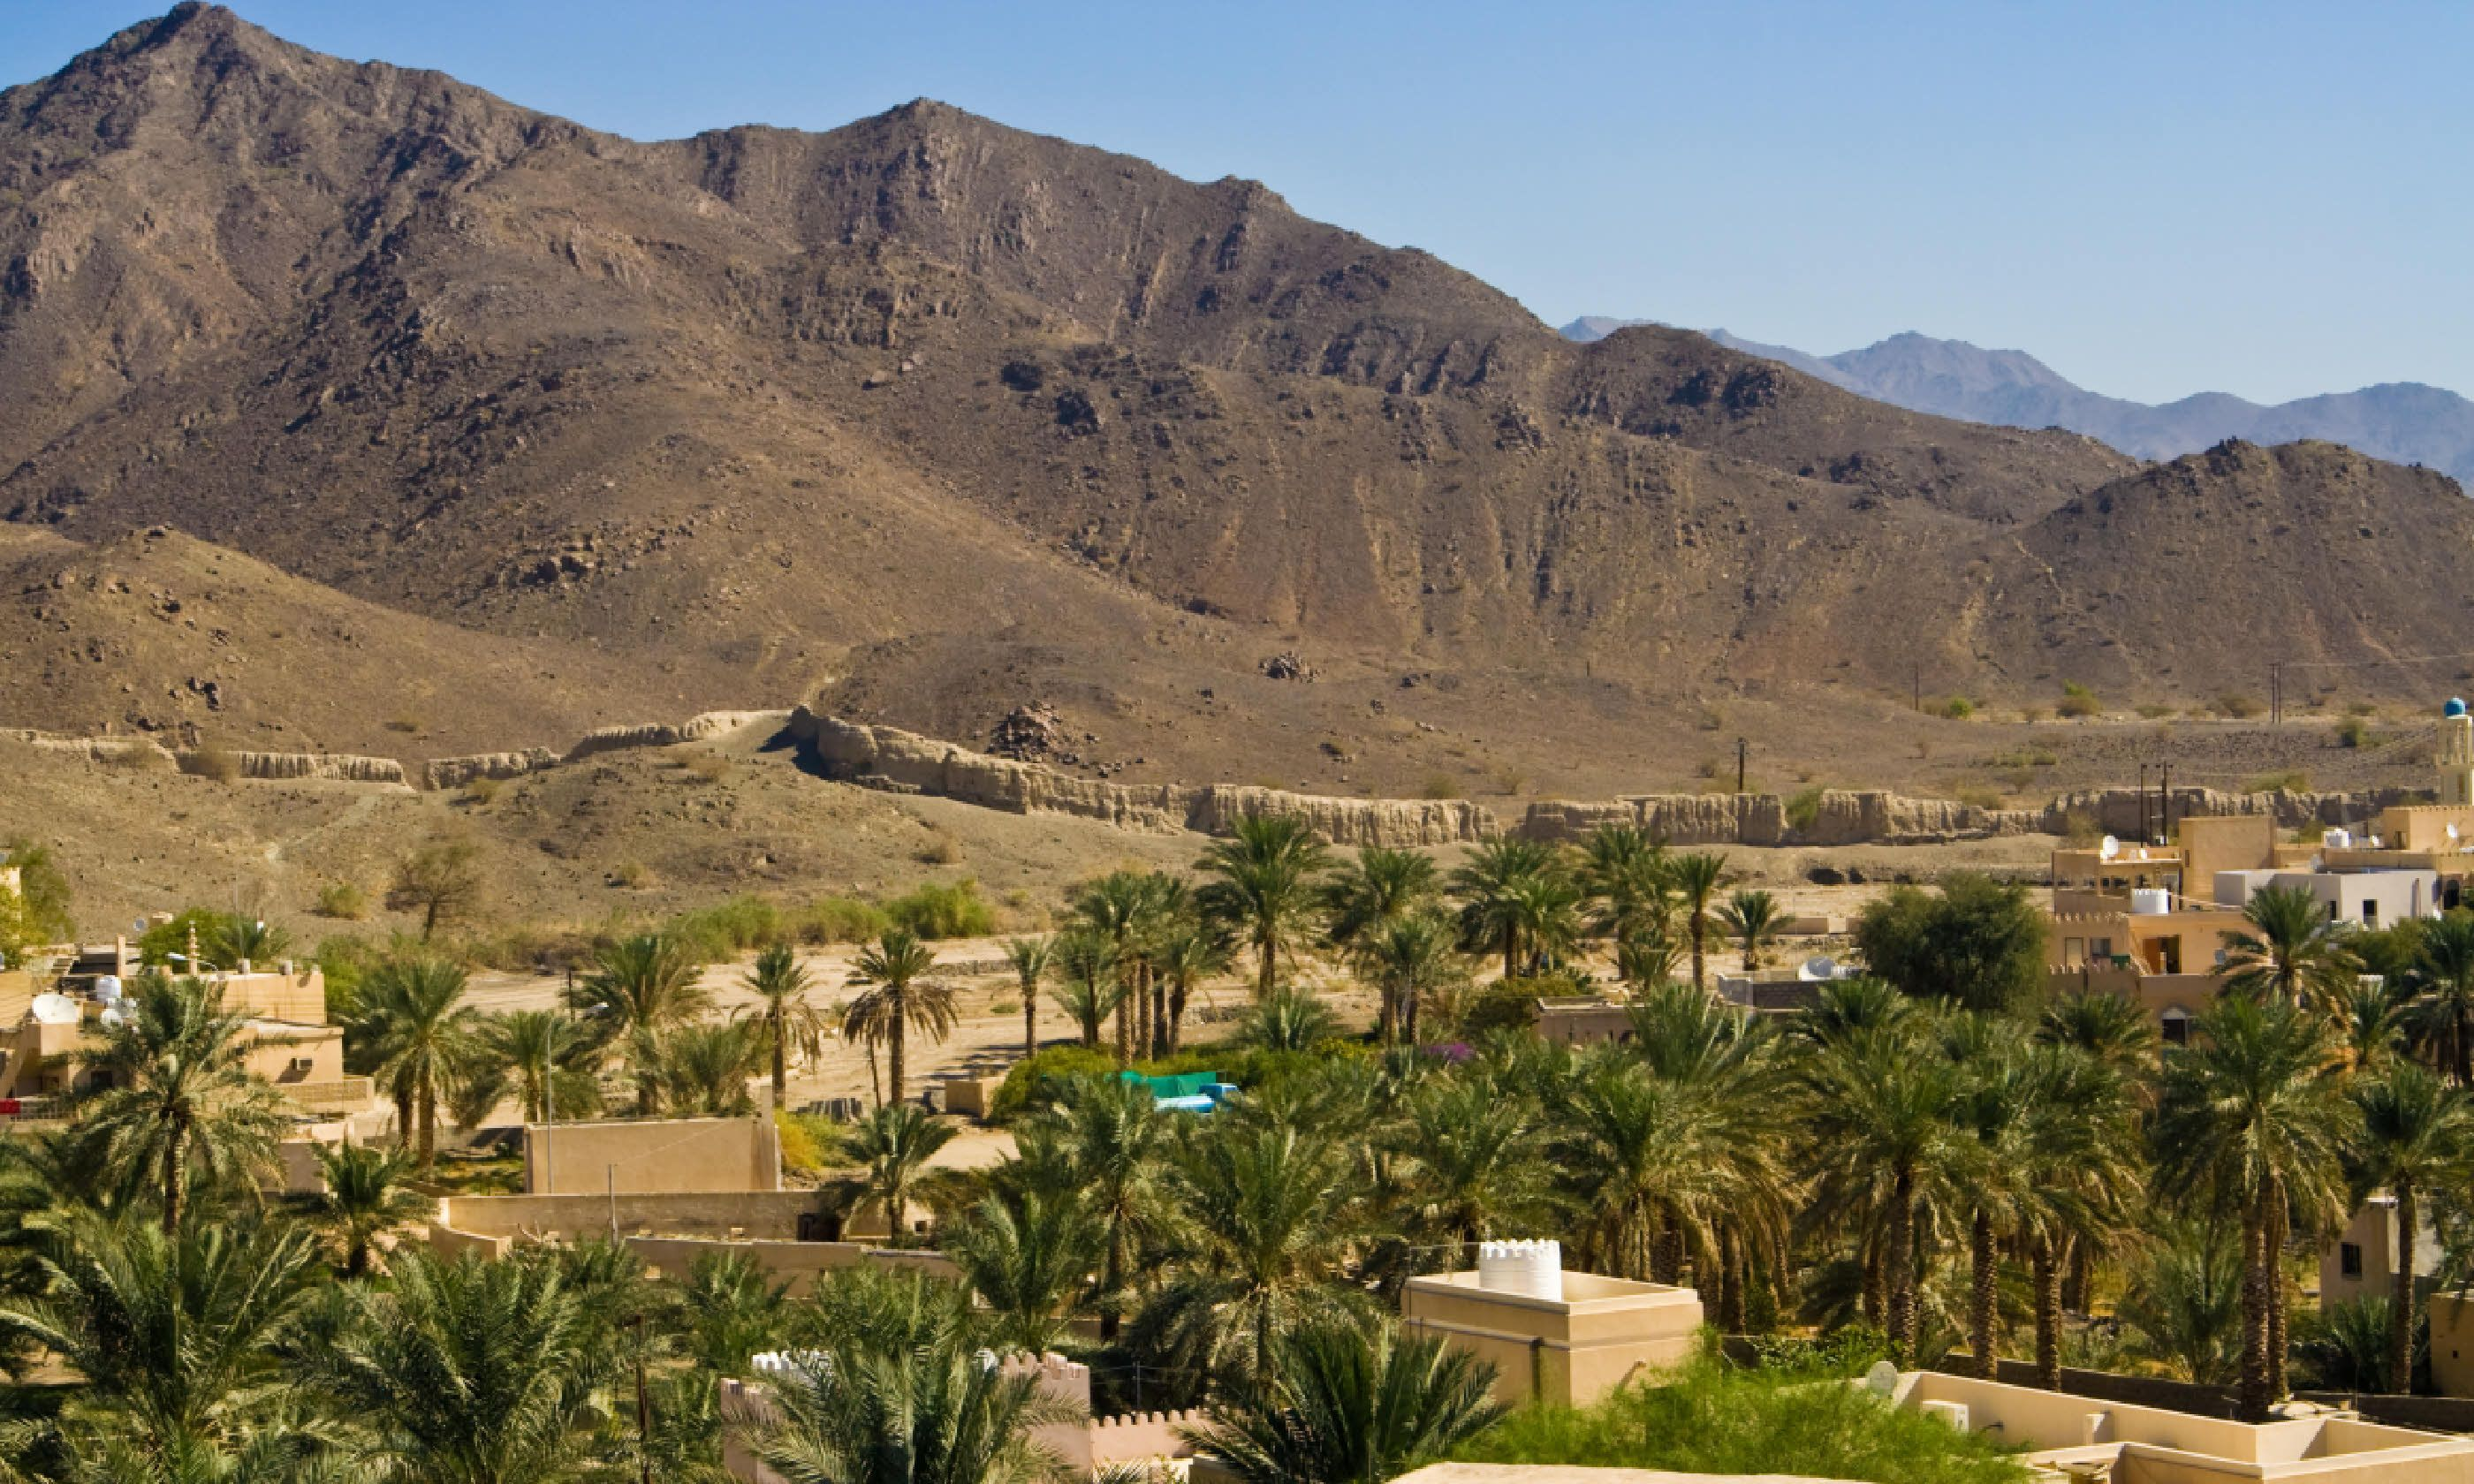 Town of Bahla in the foothills of the Western Hajar (Shutterstock)